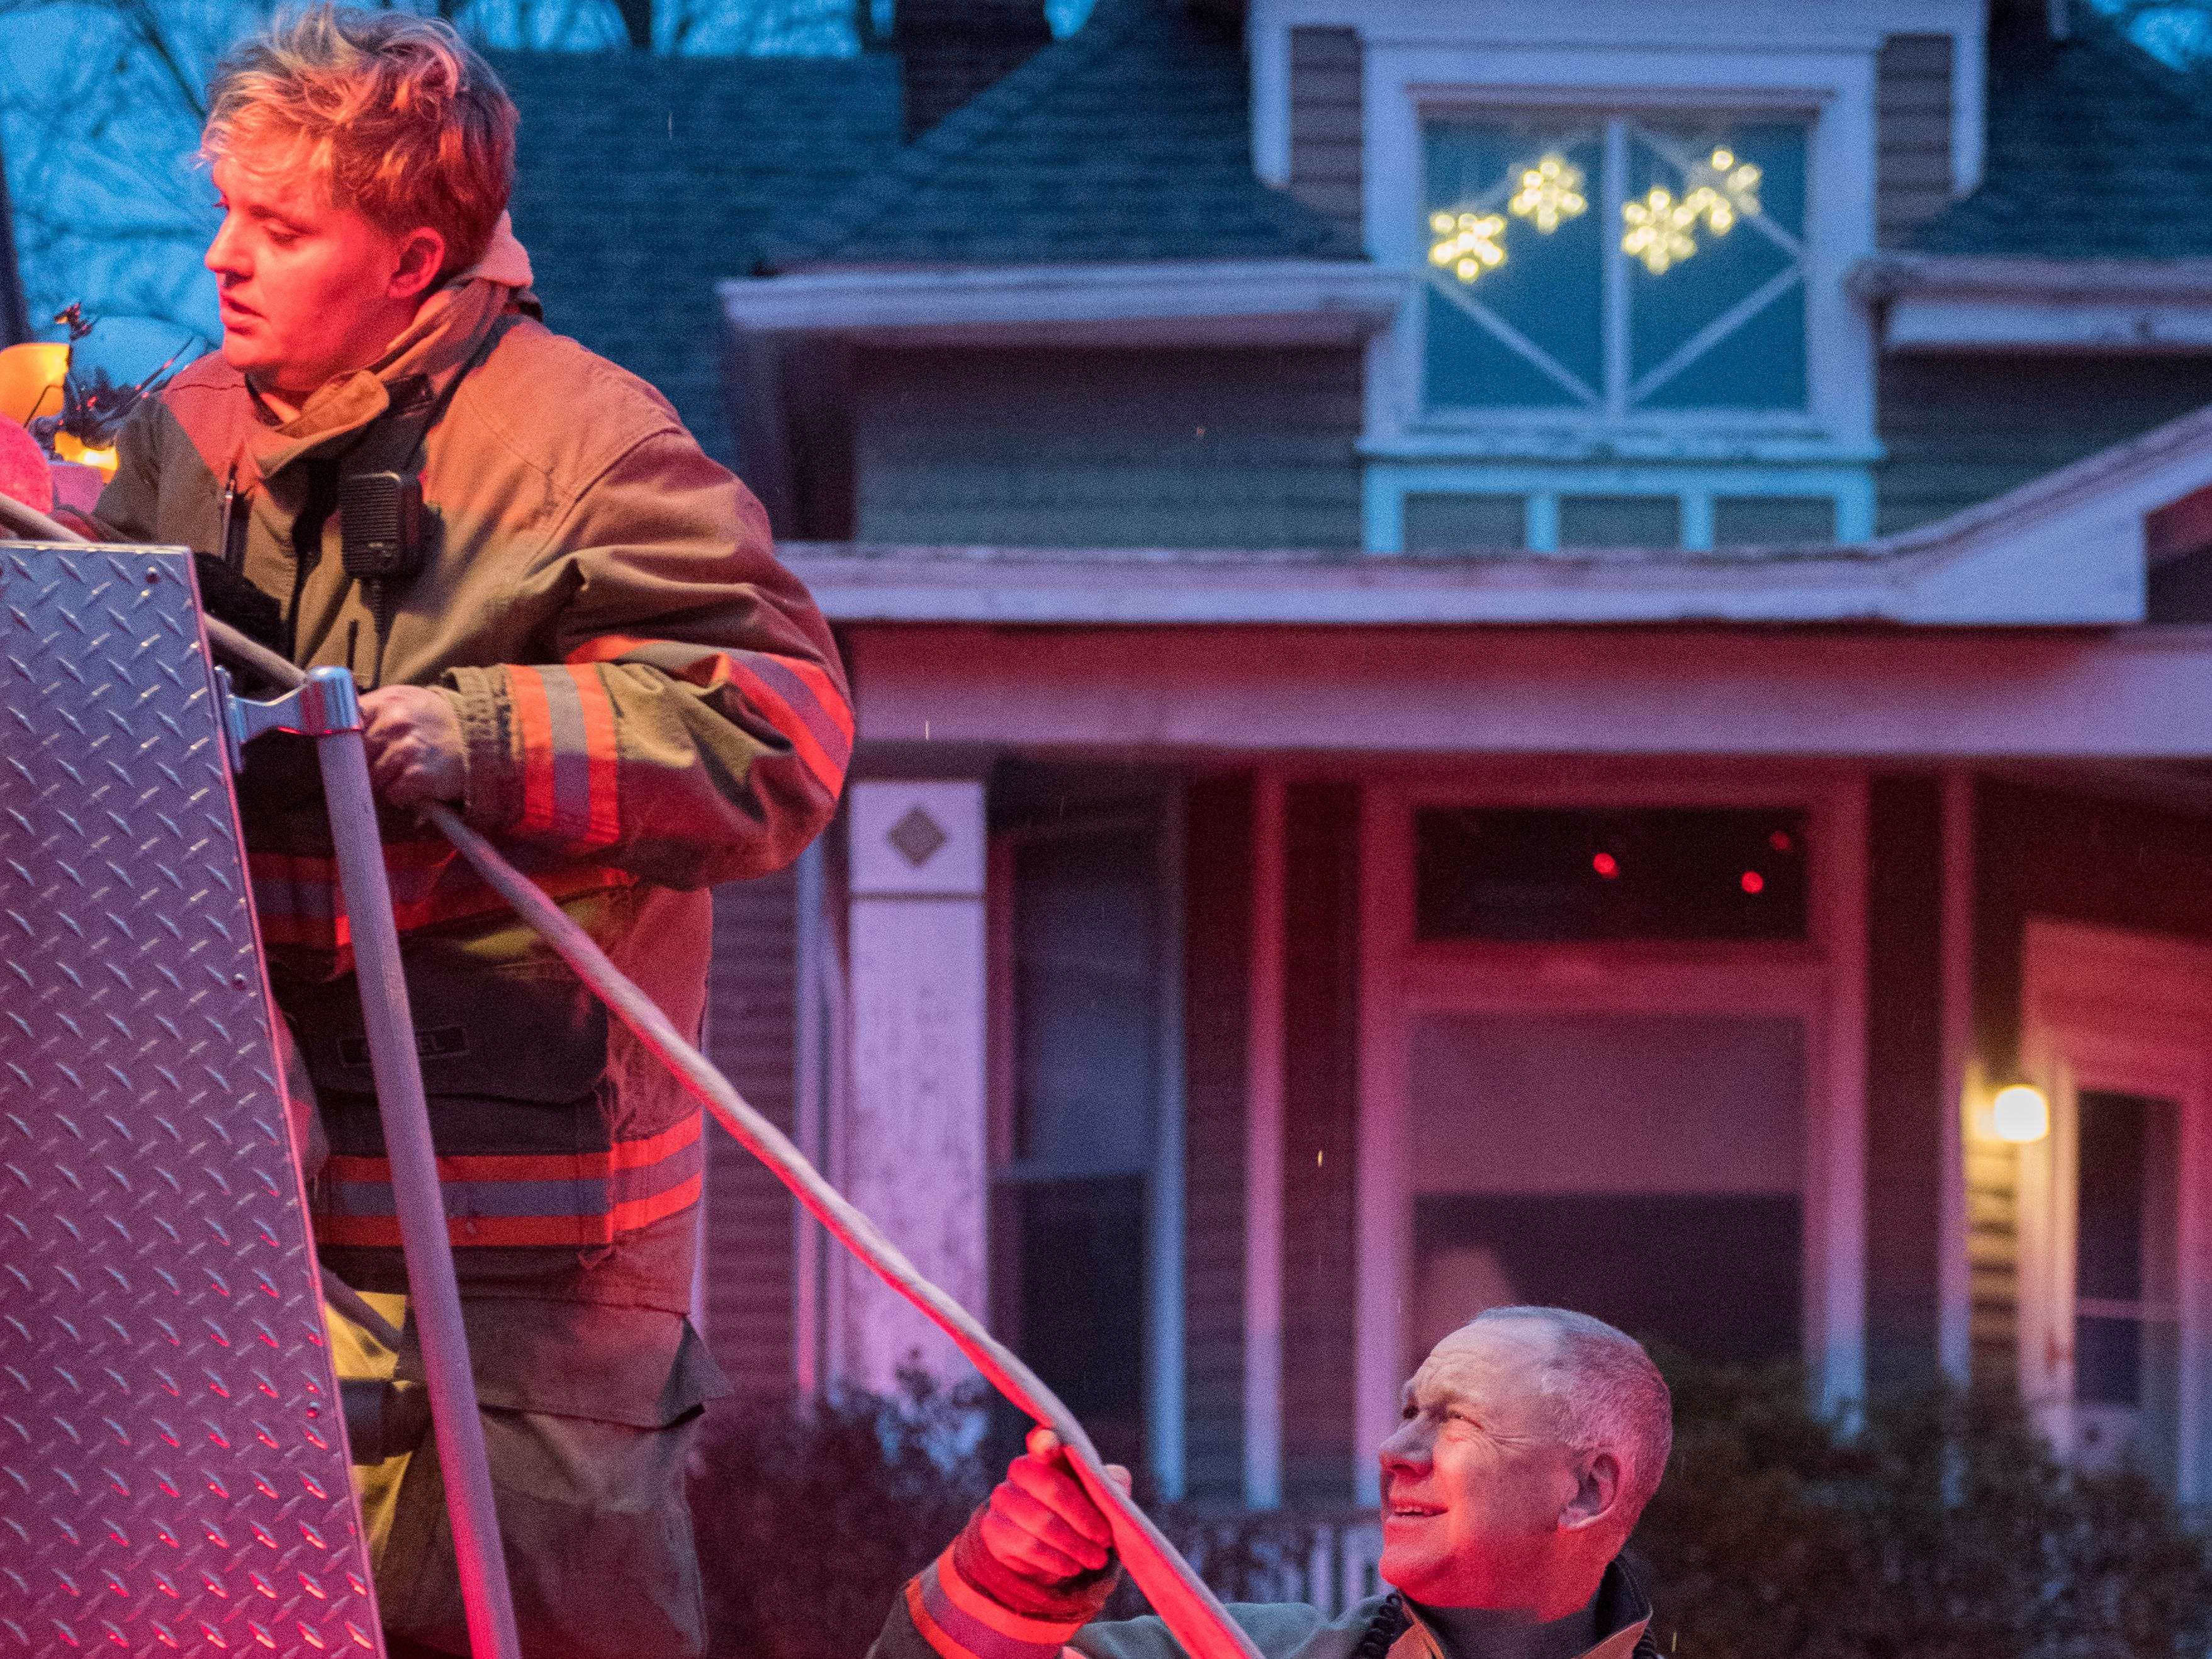 Evansville Fire Department's Jamie Phillips, left and Bryan Will load a hose back onto a firetruck while sleet falls Friday evening after responding to a house fire at 426 Adams Avenue in Evansville, Ind. Jan 11, 2019.